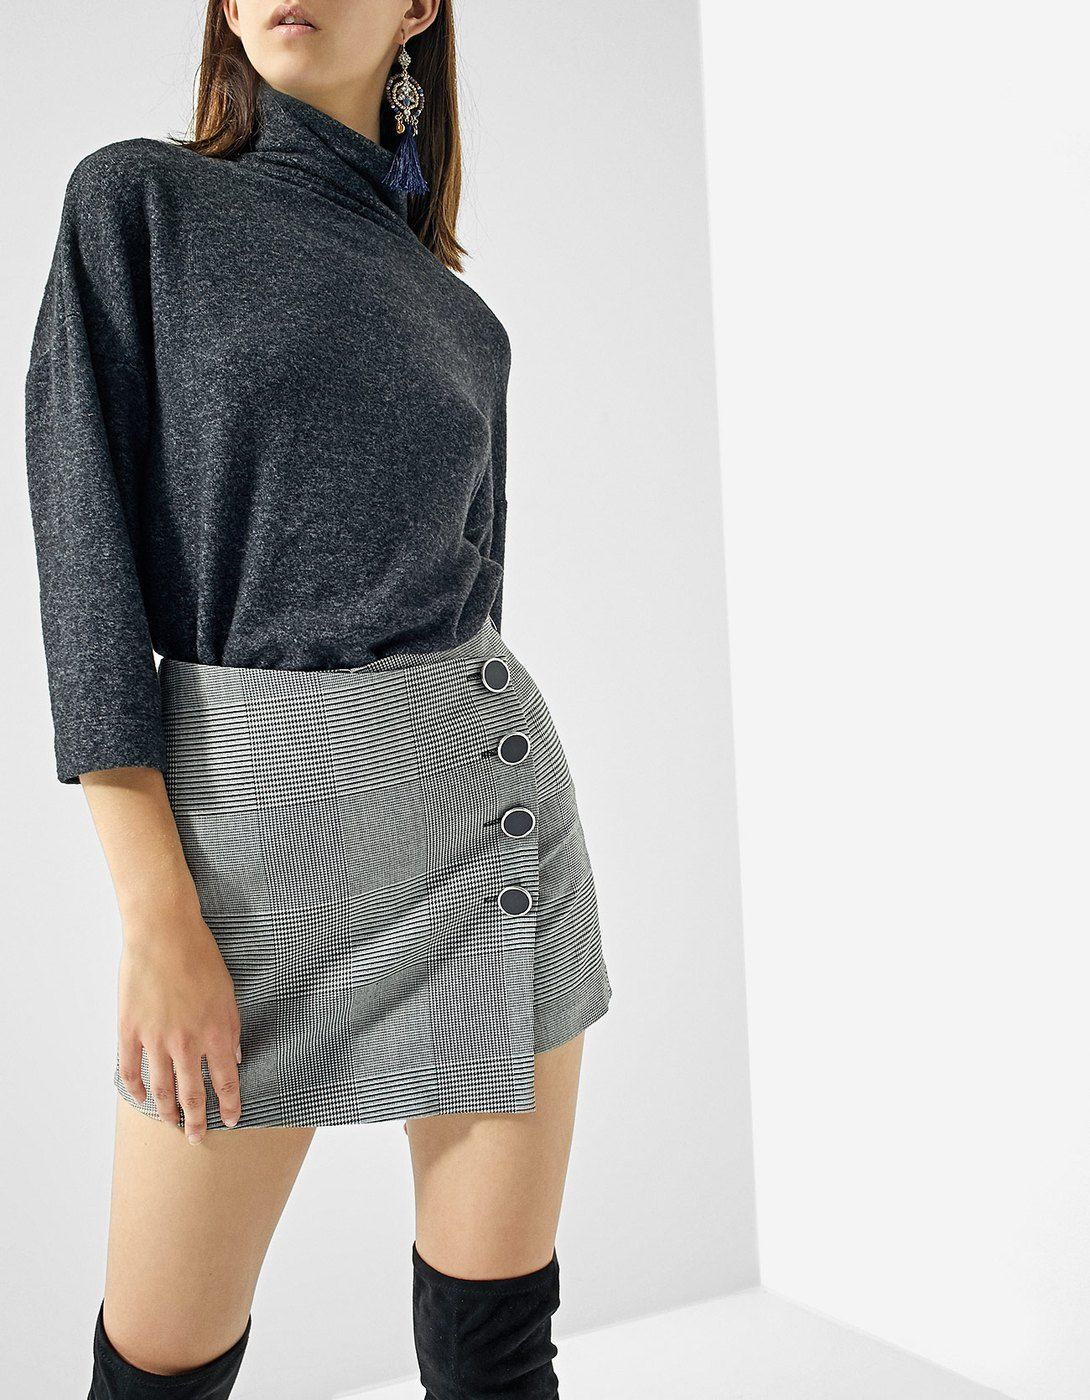 2c4b143b2 At Stradivarius you'll find 1 Printed skort with buttons for just 17.99  United Kingdom . Visit now to discover this and more Skirts.